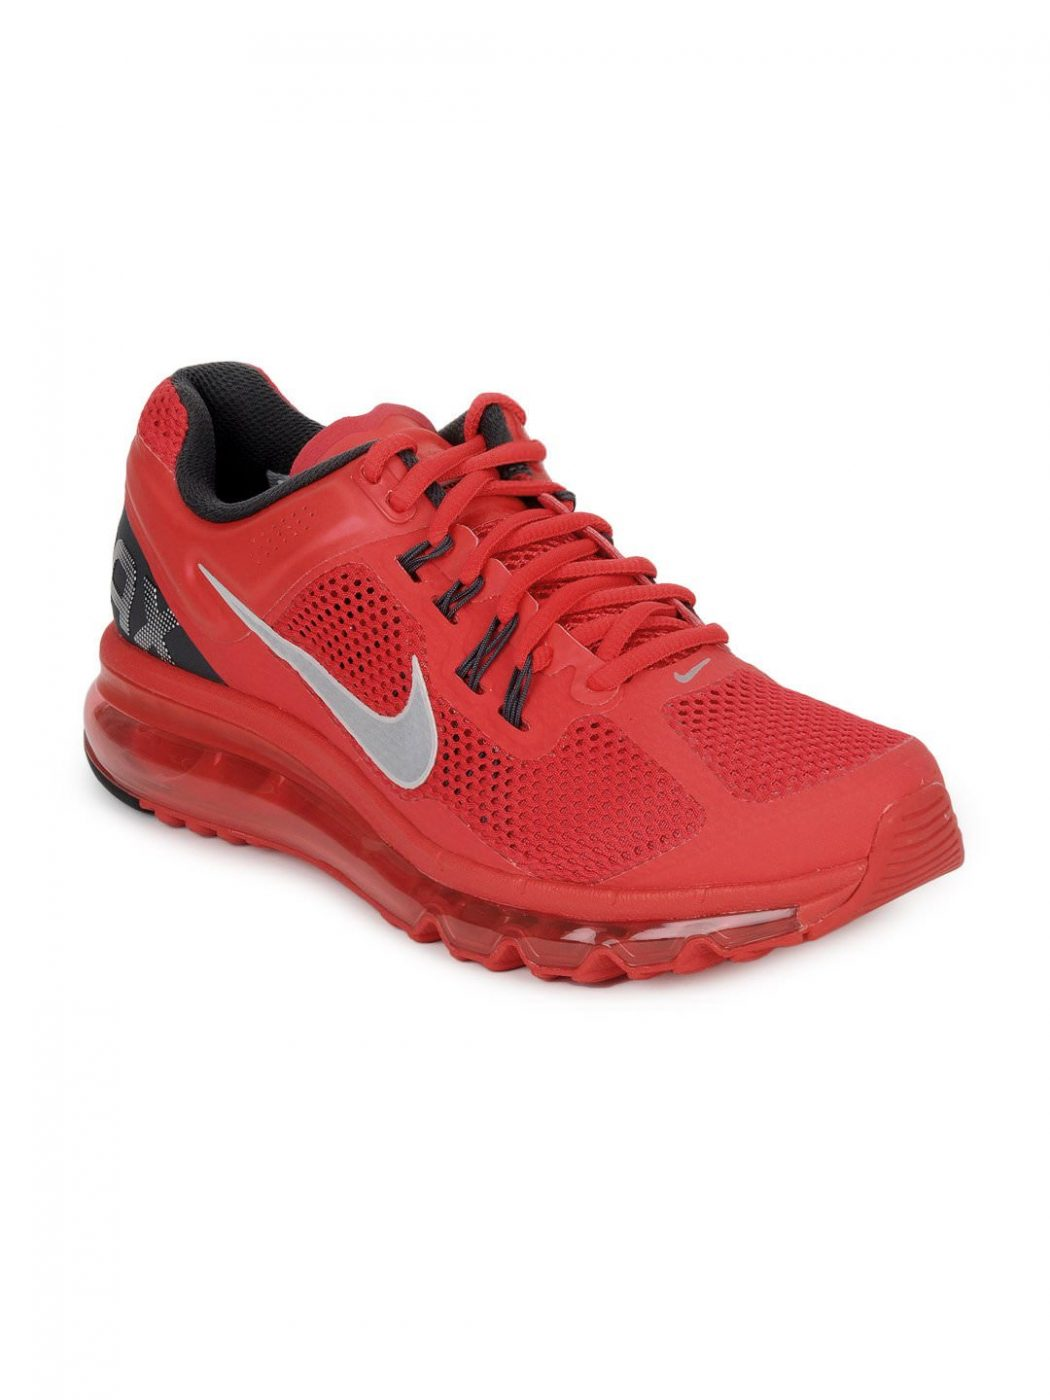 The Most Stylish Nike Shoes For Men Pouted Online